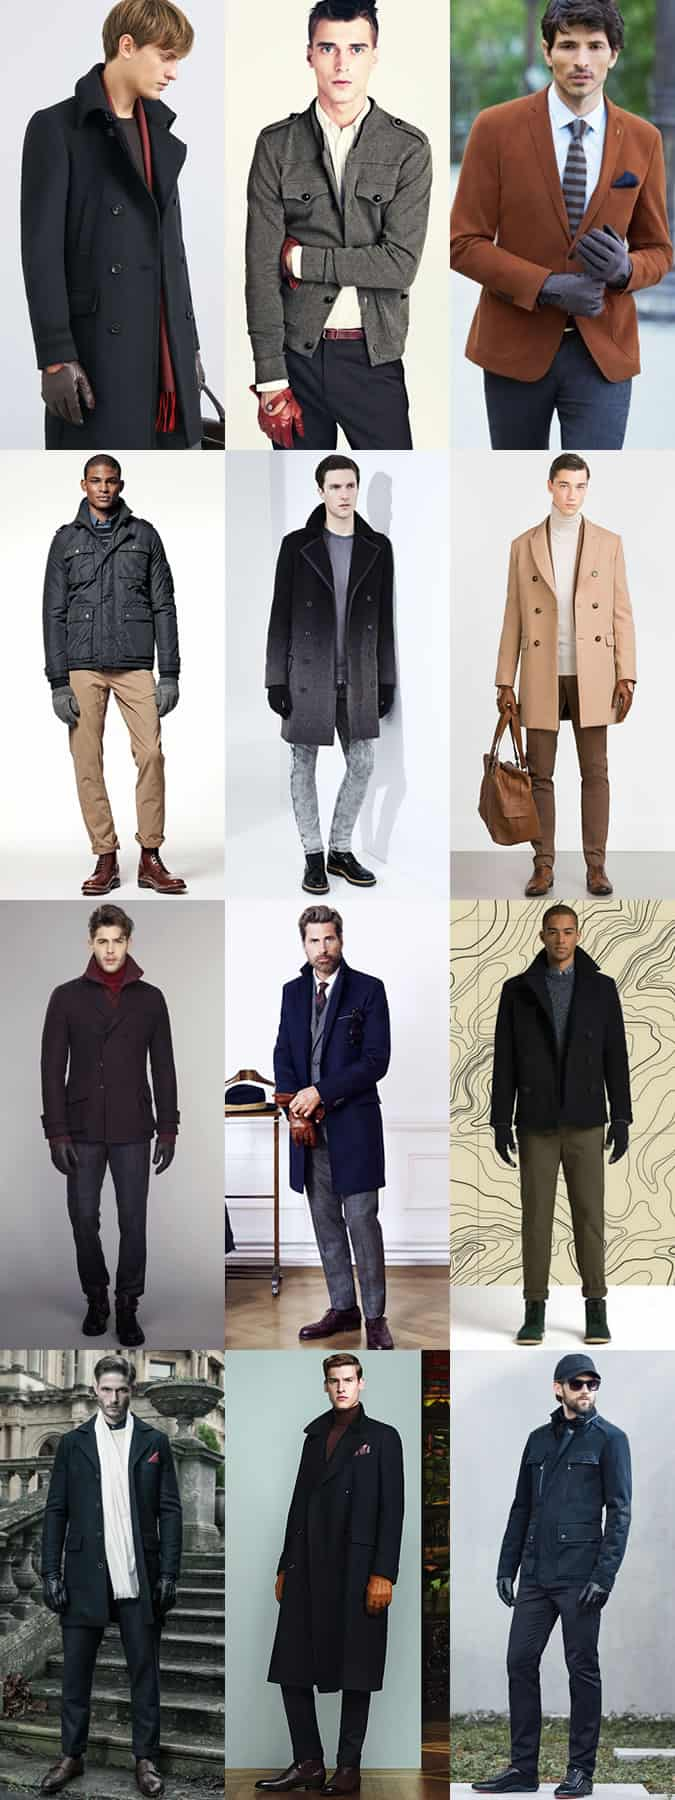 Men's Driving, Leather & Knitted Gloves Autumn/Winter Outfit Inspiration Lookbook